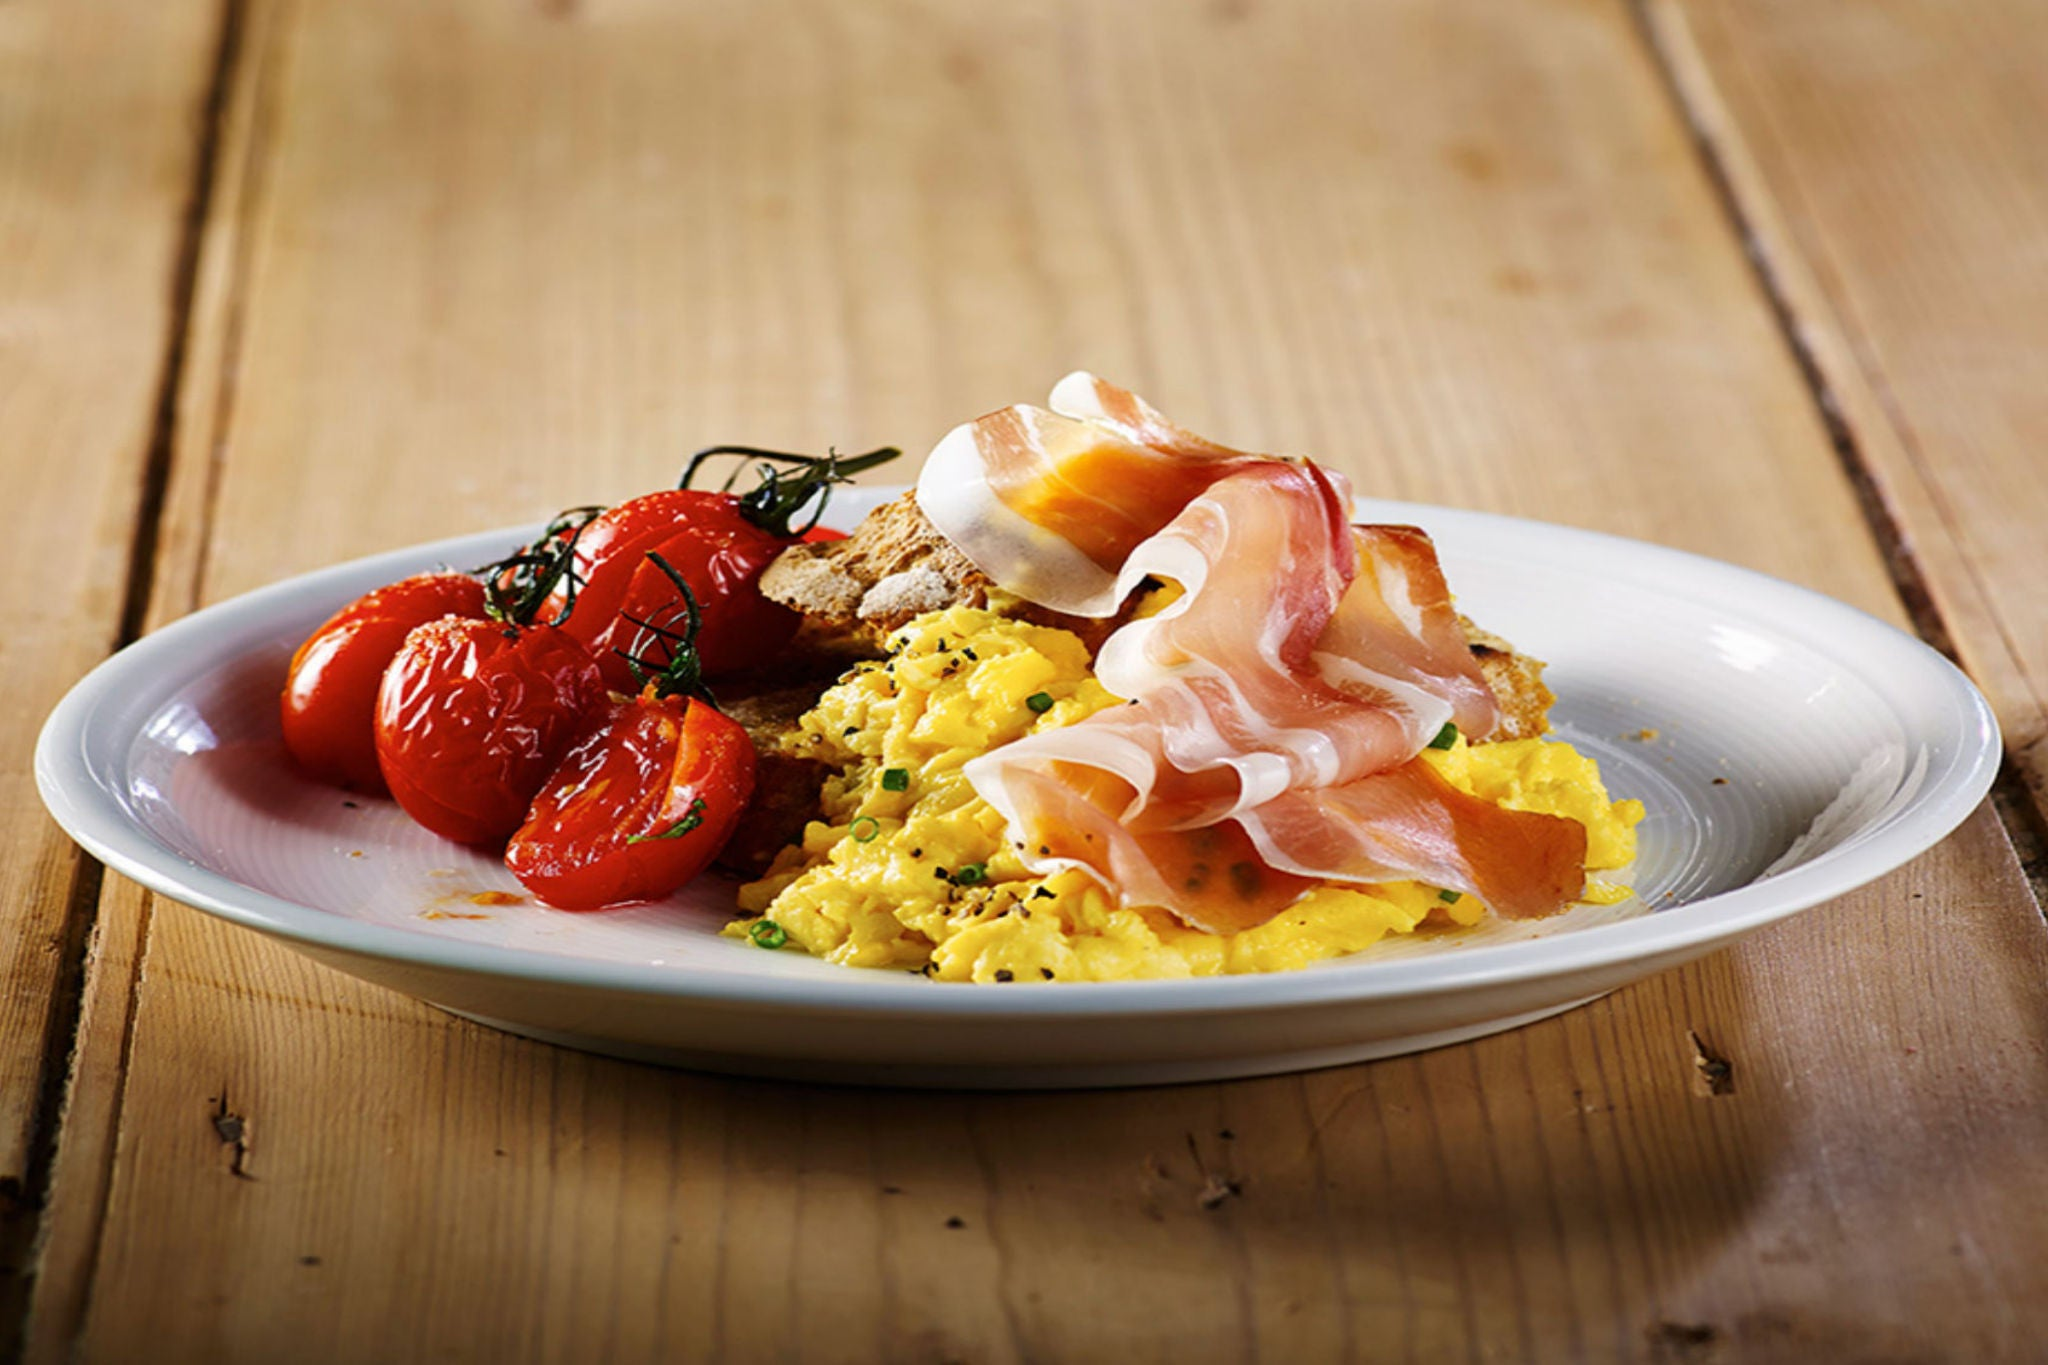 Breakfast crostini with Cumbrian Air-Dried Ham and Free Range Eggs